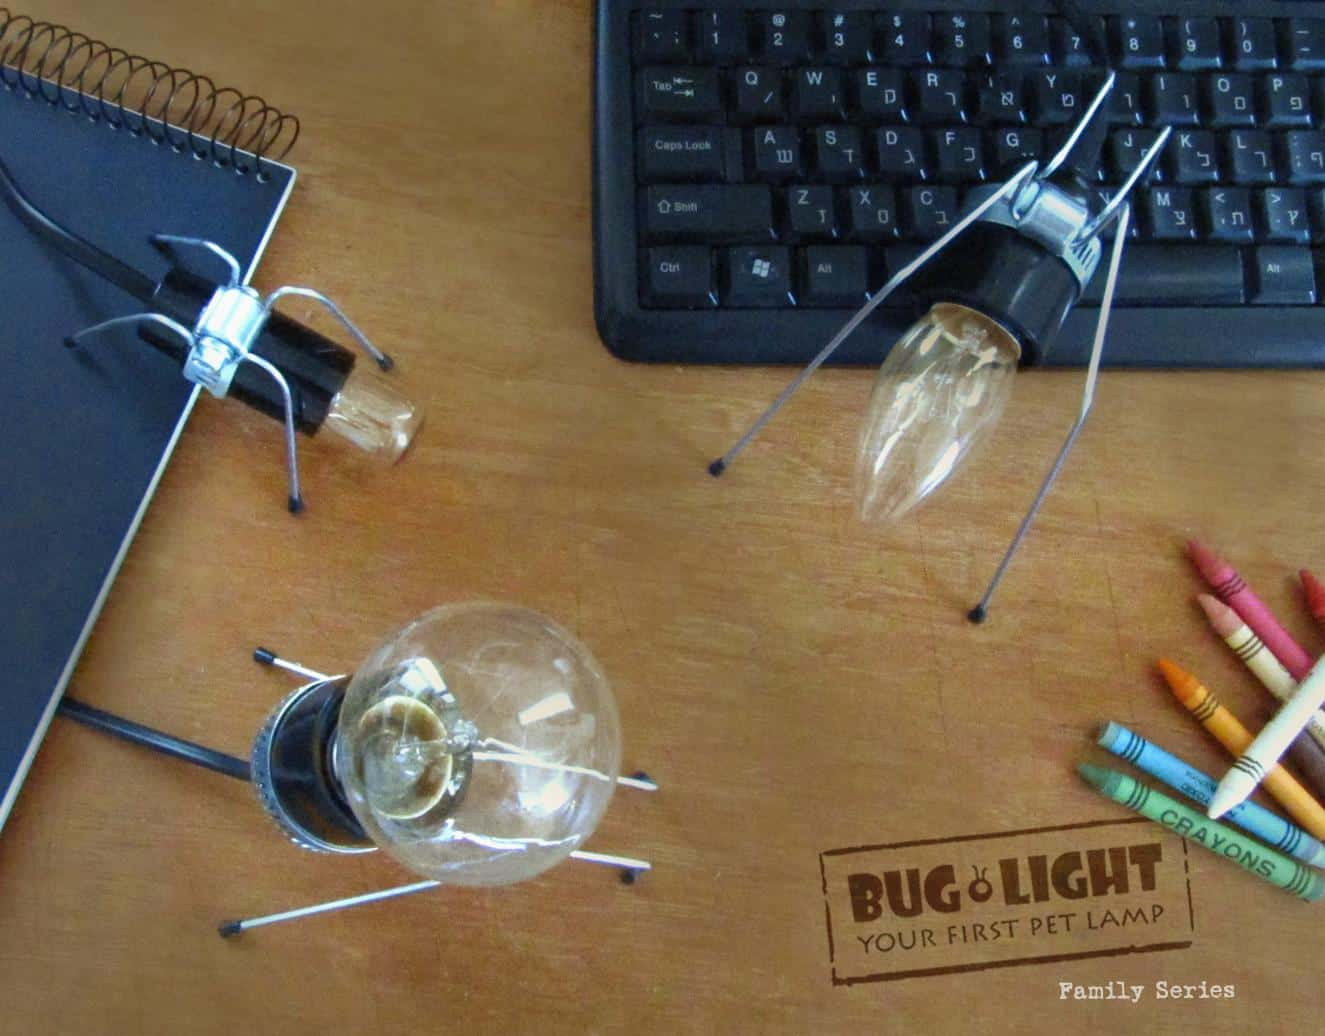 Bug Light Is A Tabletop Collection Of Insect Lamps